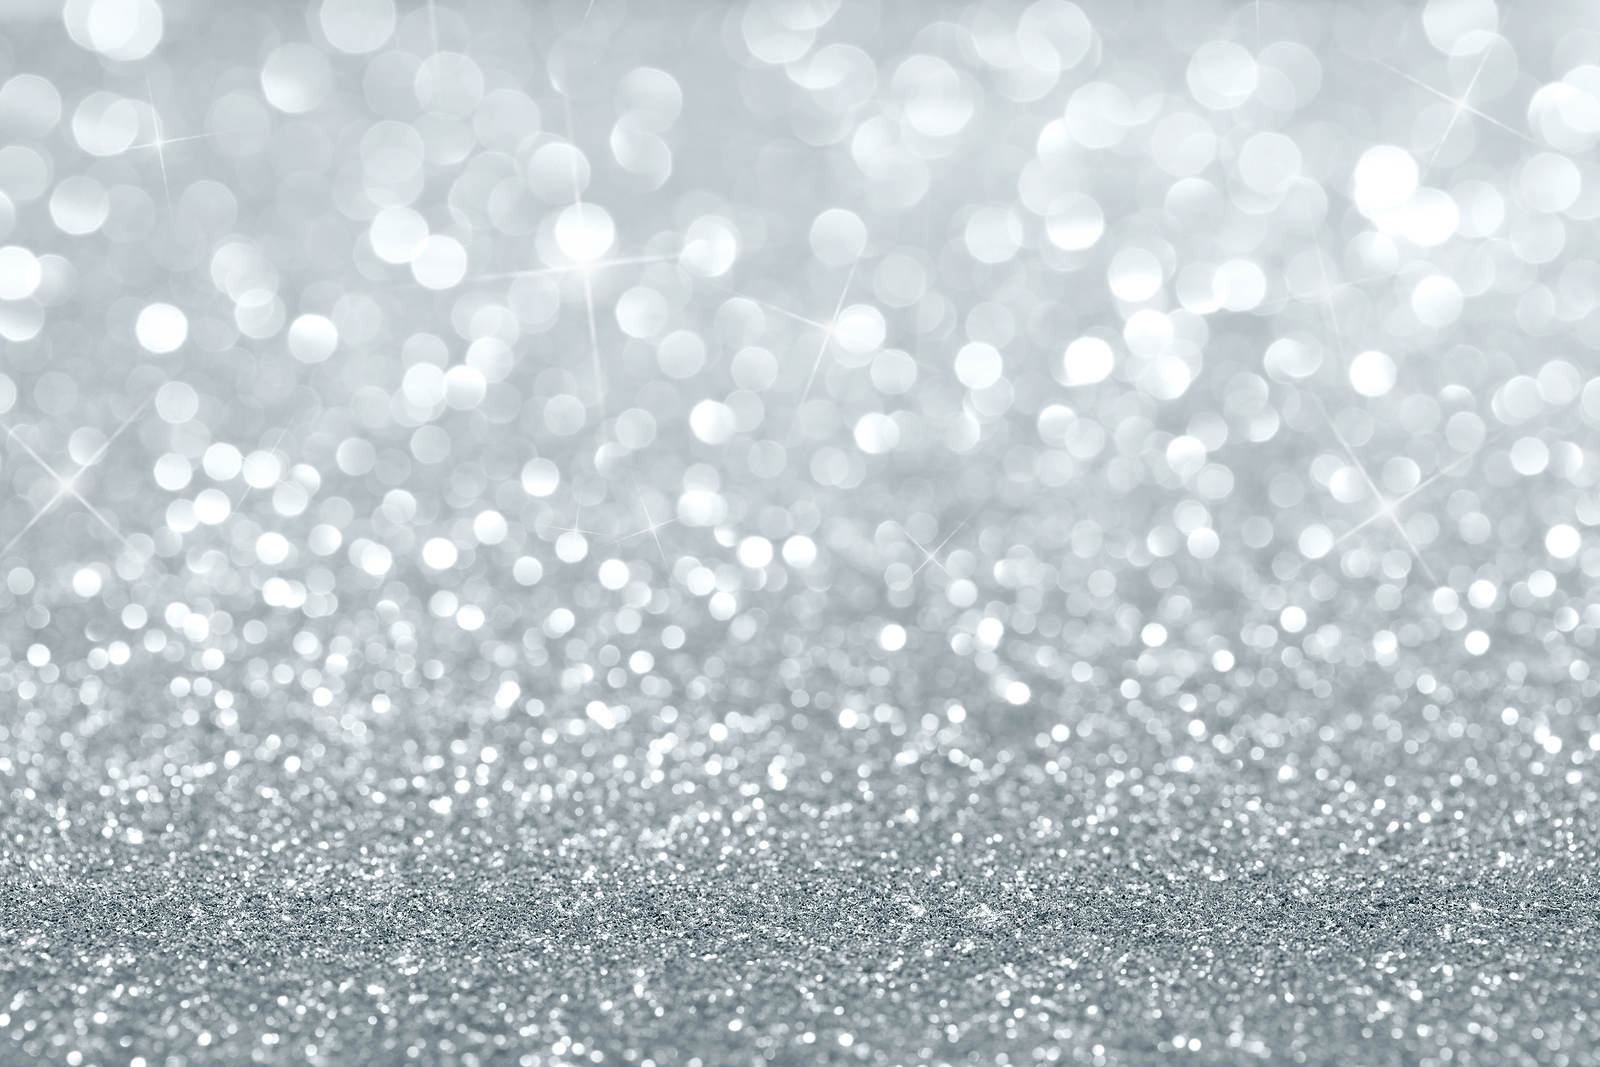 10+ Silver Glitter Backgrounds